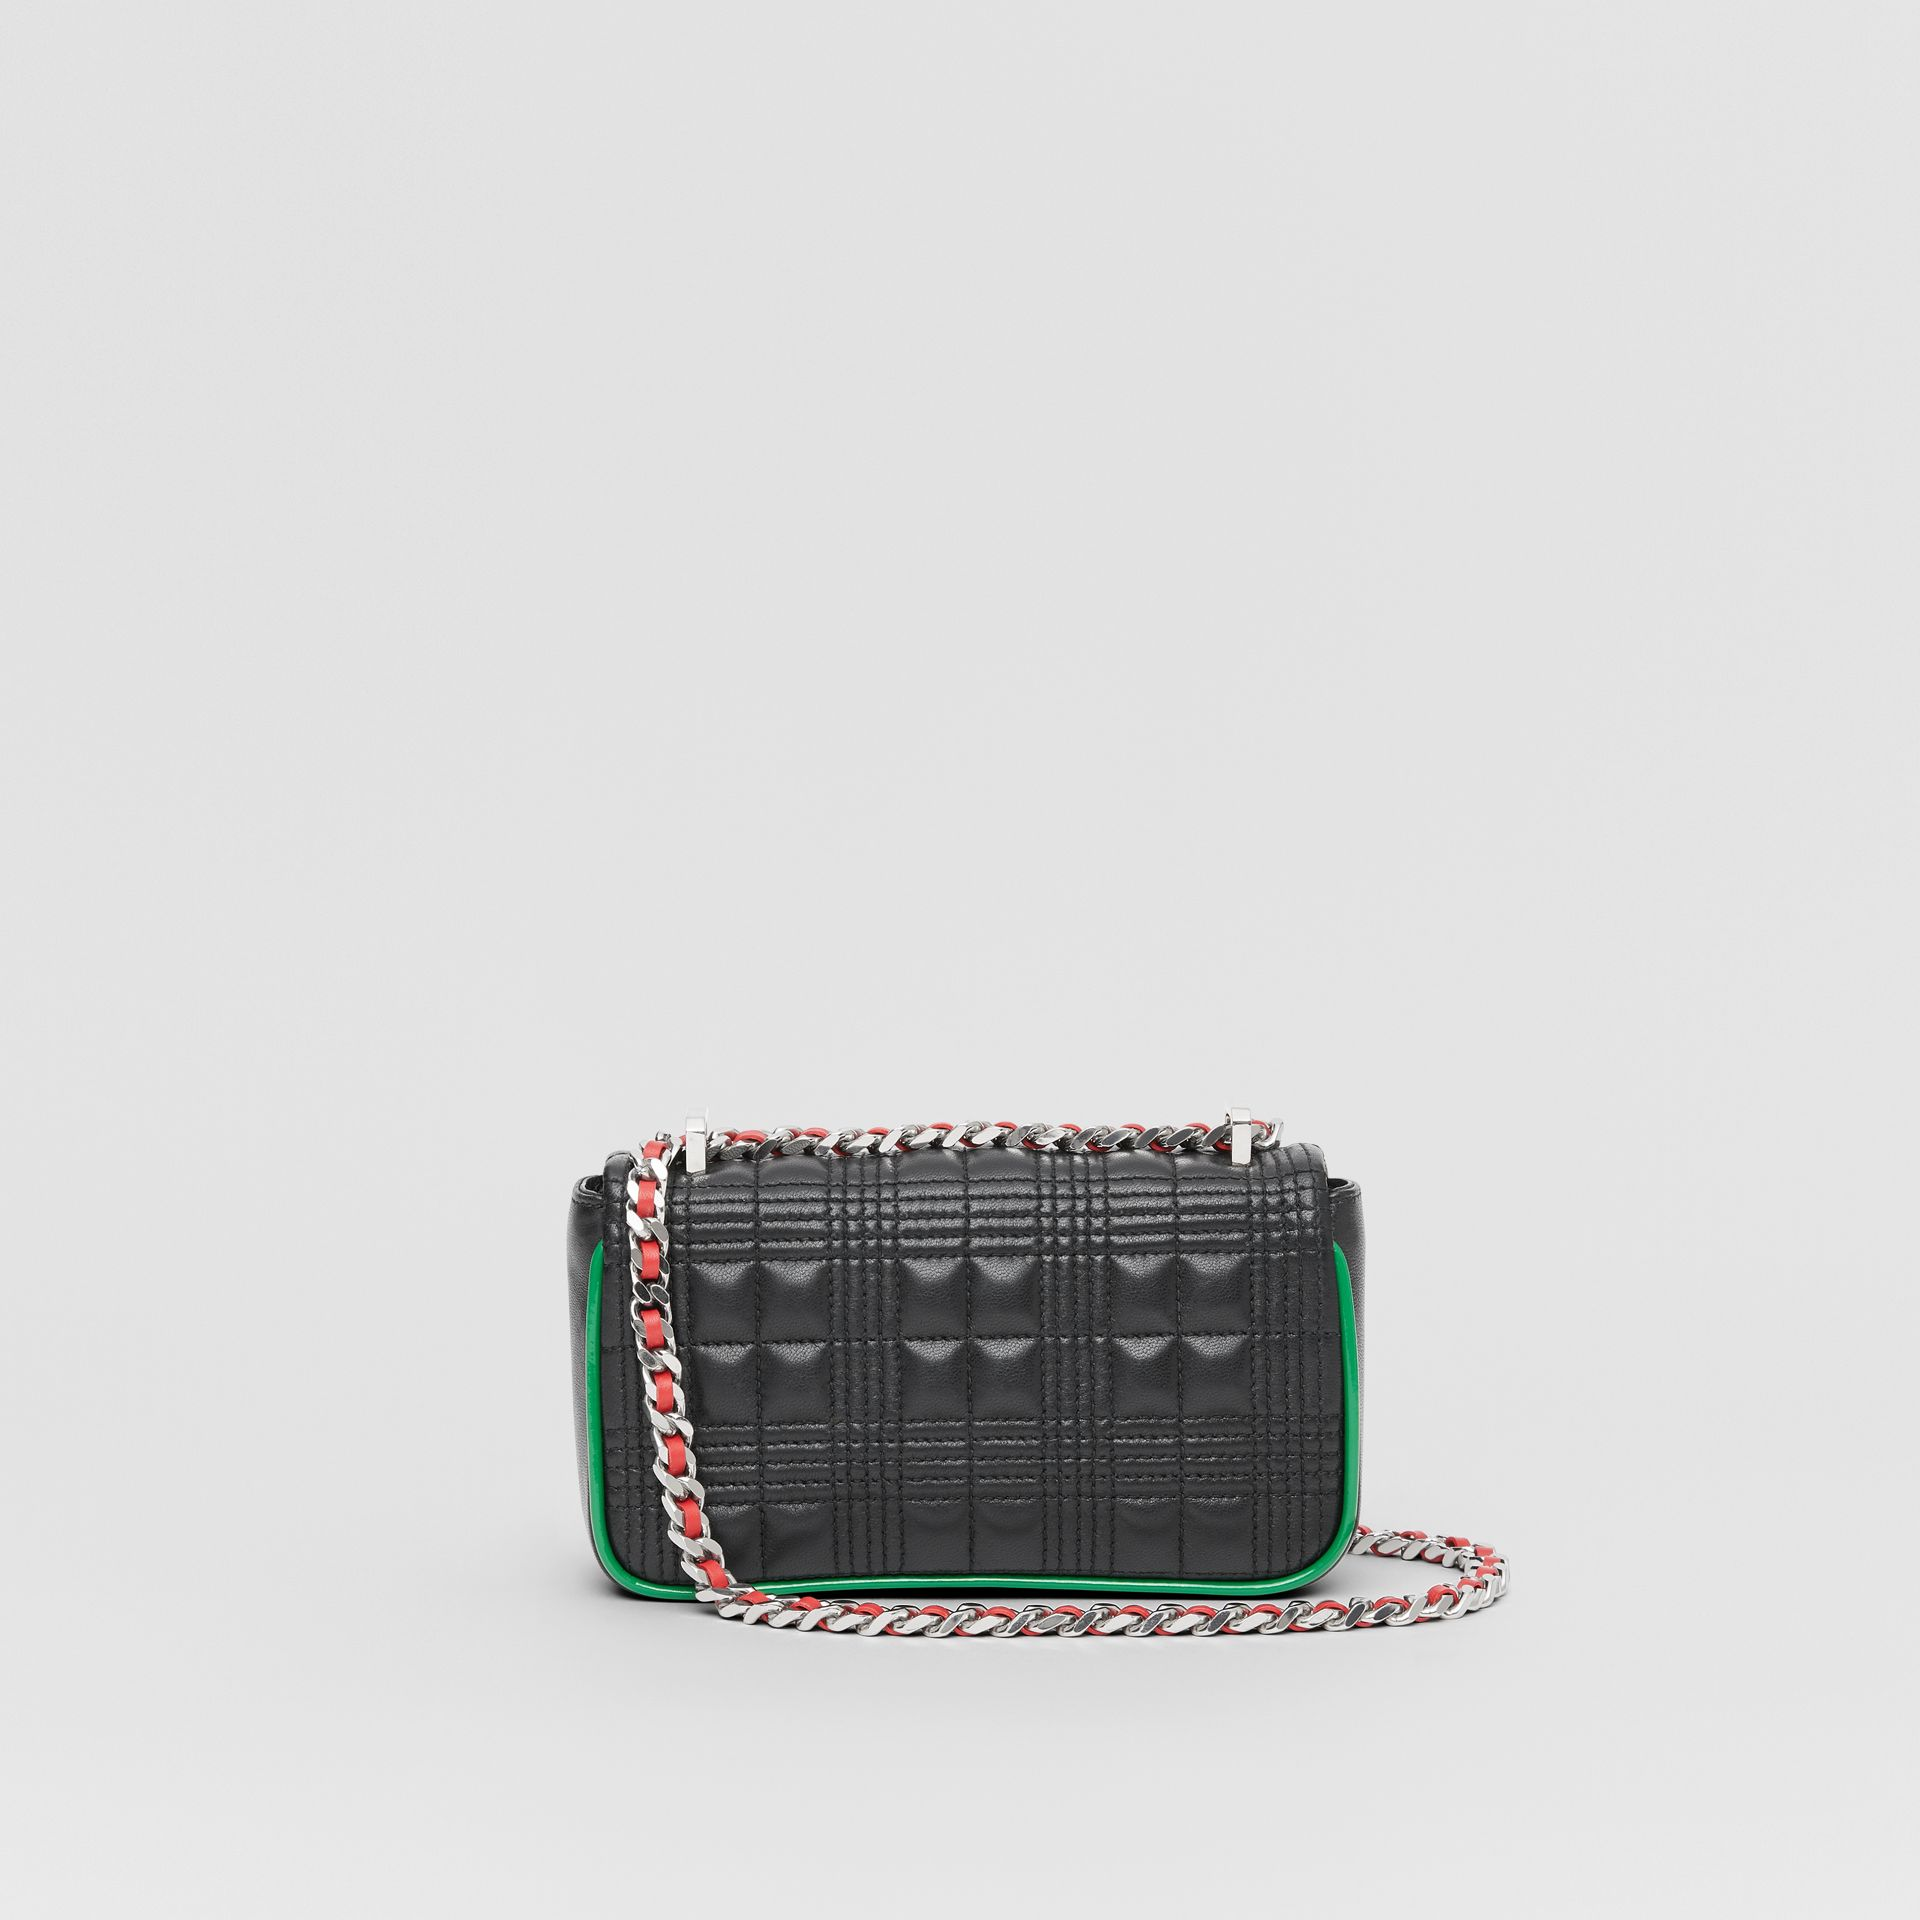 Mini Quilted Lambskin Lola Bag in Black - Women | Burberry - gallery image 7